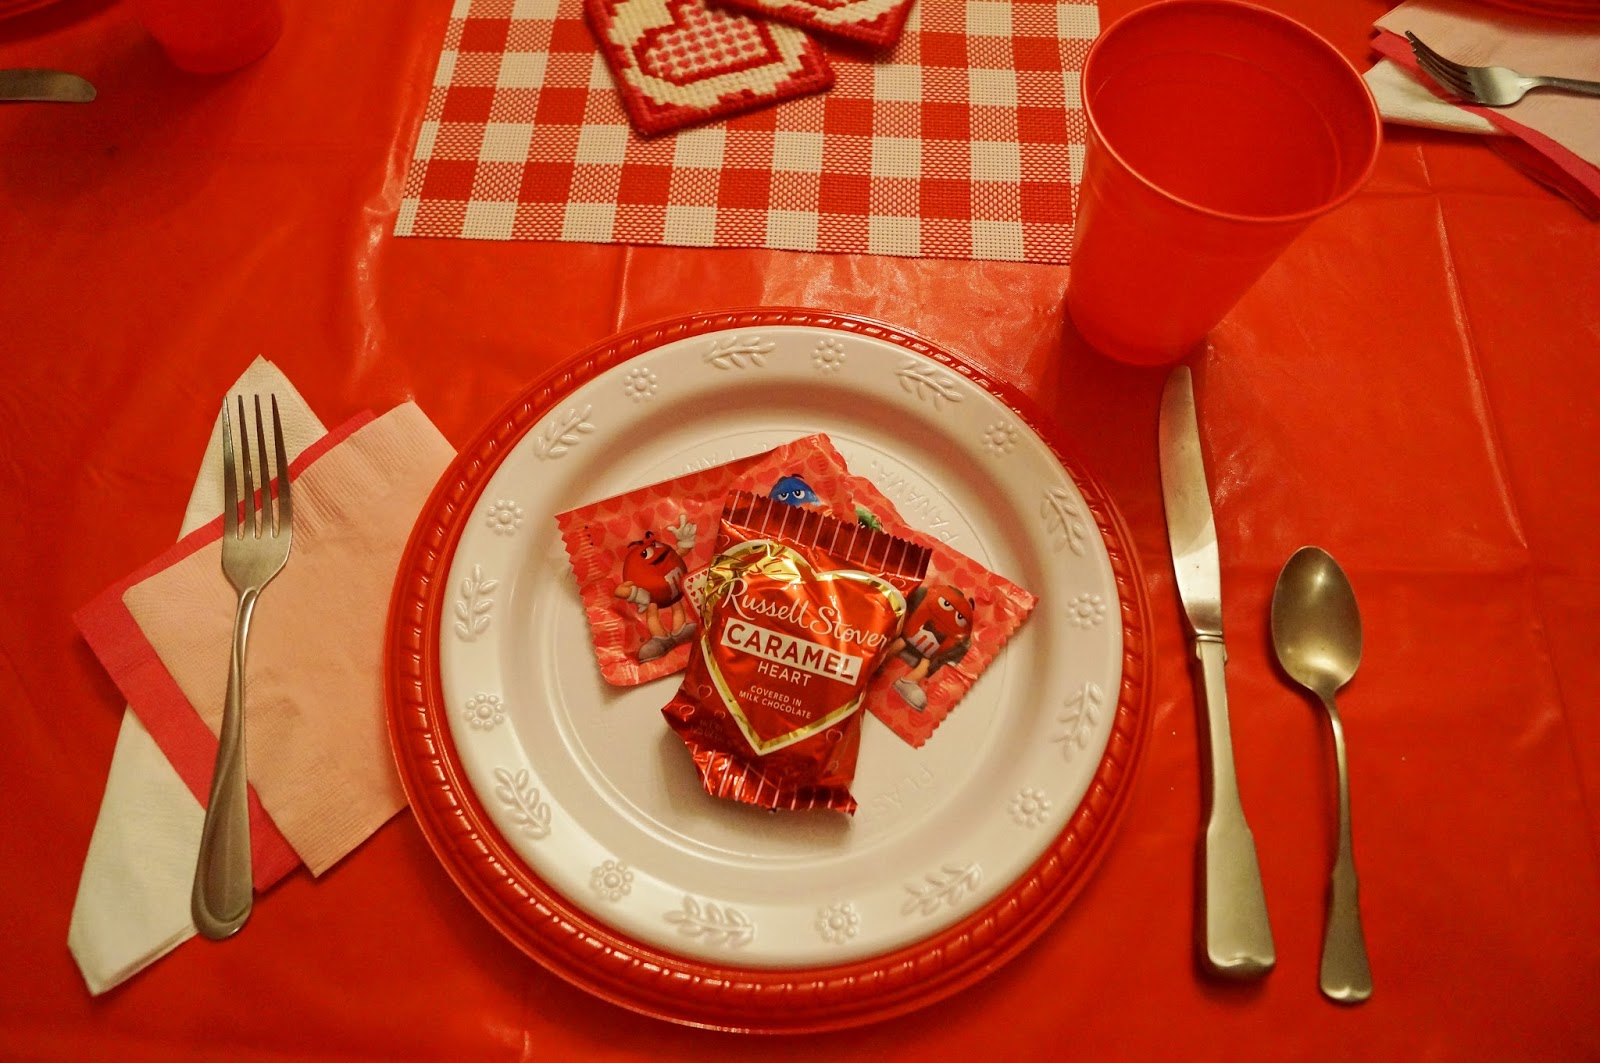 Cute Decor ideas for a Valentines Day Dinner